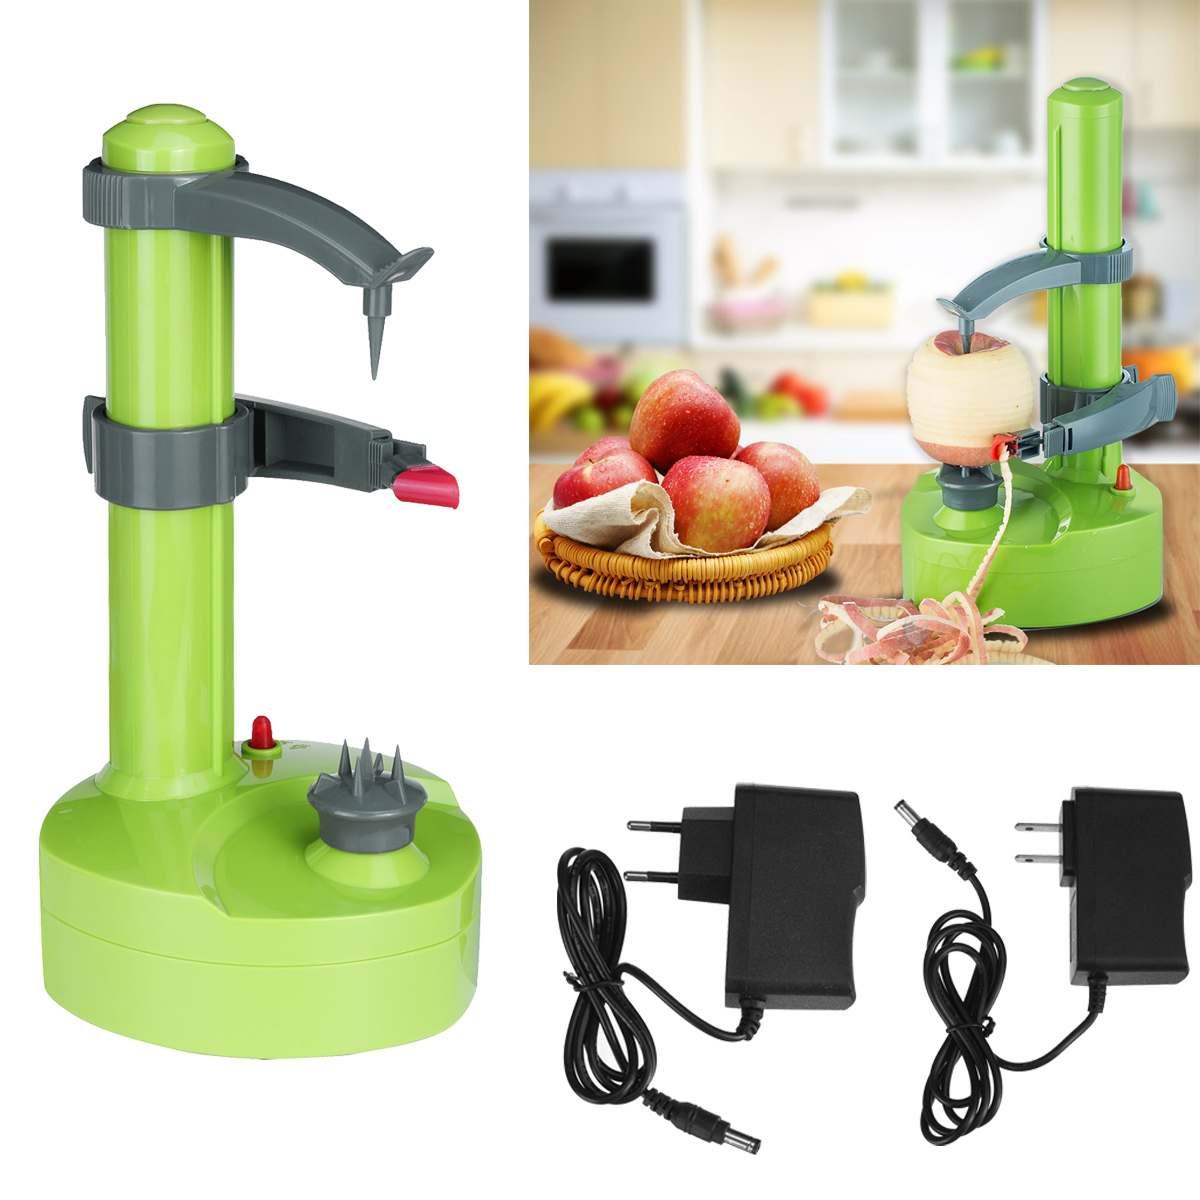 Electric Peeler Multifunction Stainless Steel Auto Fruit Peeler Vegetable Cutter Three Spare Blade Potato Peeler 110V/220V